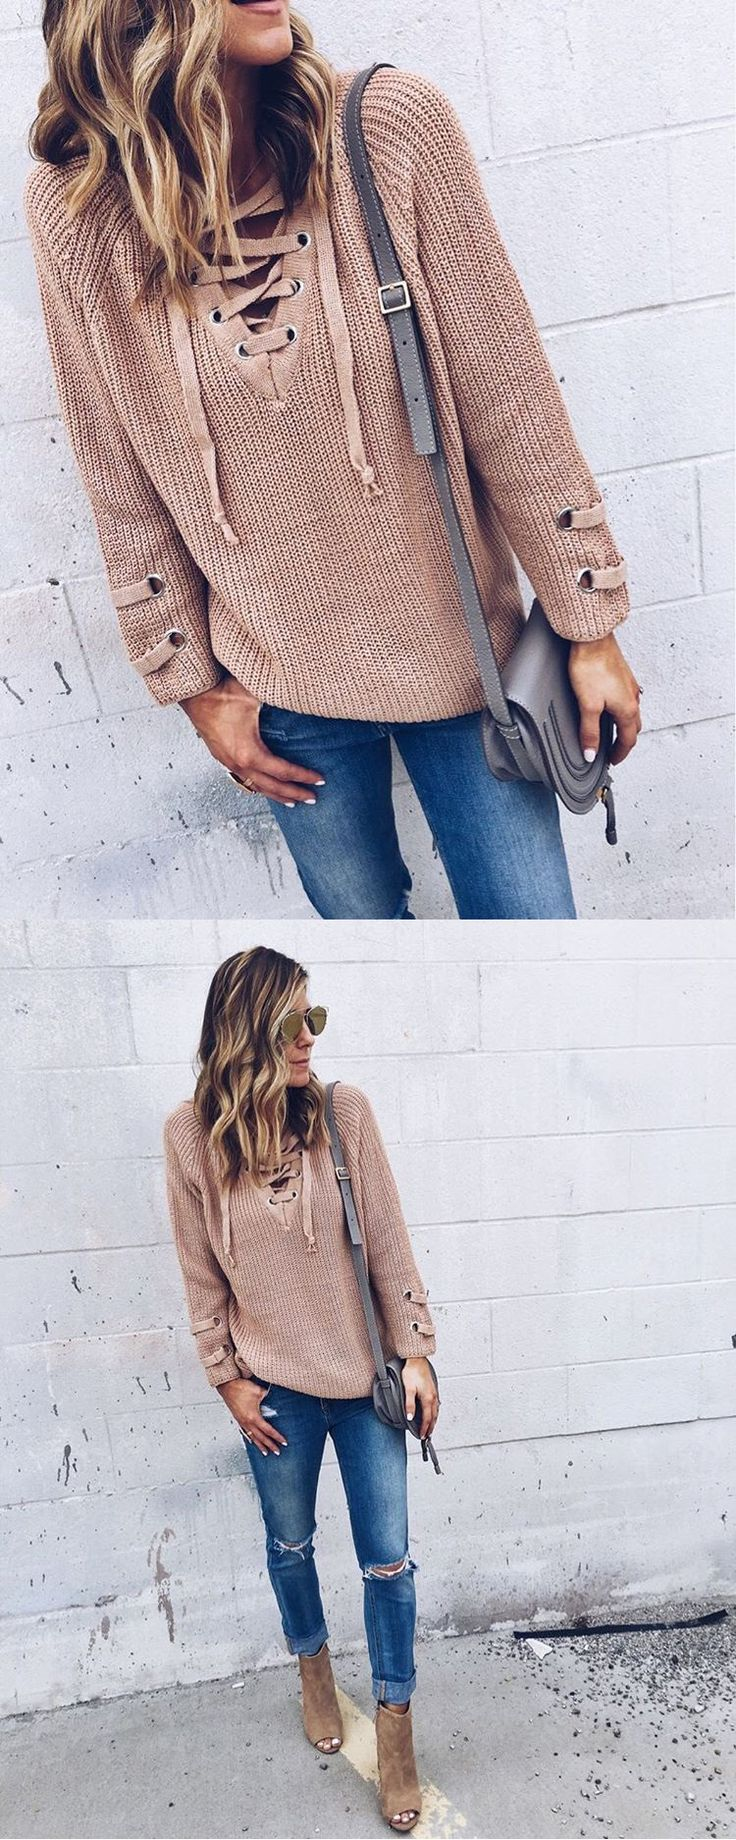 977 best Clothes images on Pinterest | Clothing, Fall and Fall ...